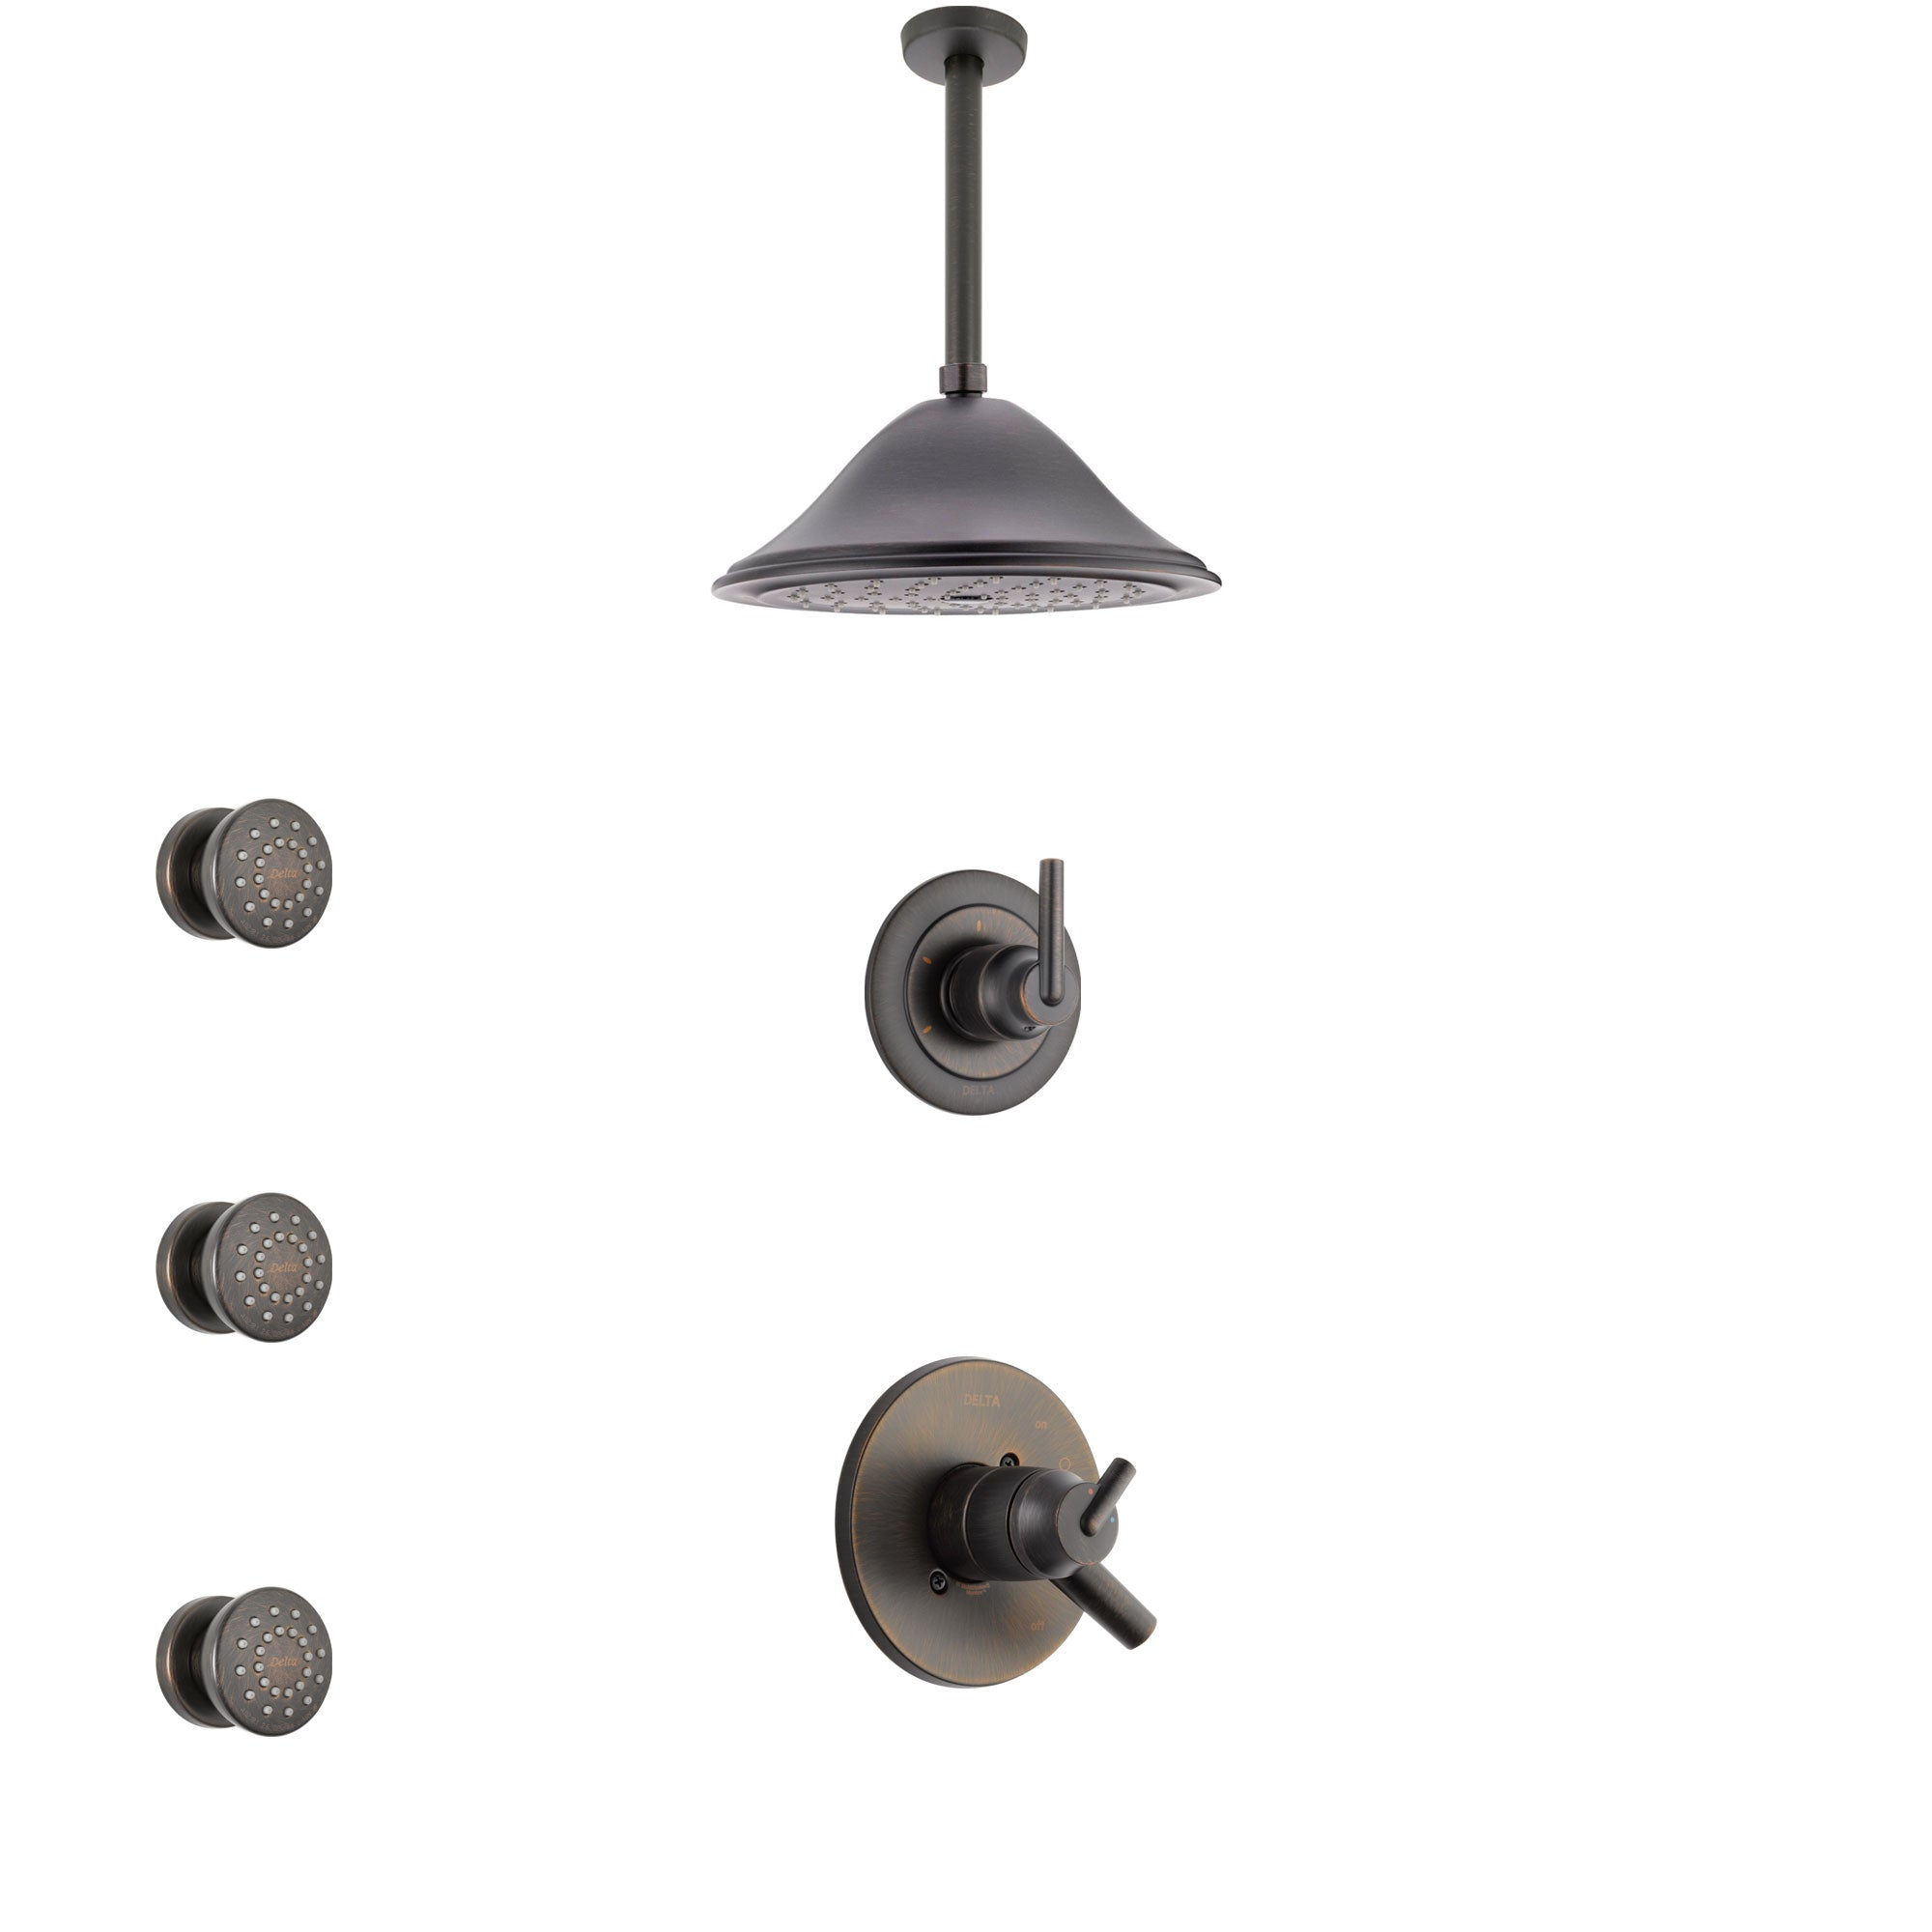 Delta Trinsic Venetian Bronze Shower System with Dual Thermostatic Control Handle, Diverter, Ceiling Mount Showerhead, and 3 Body Sprays SS17T592RB3